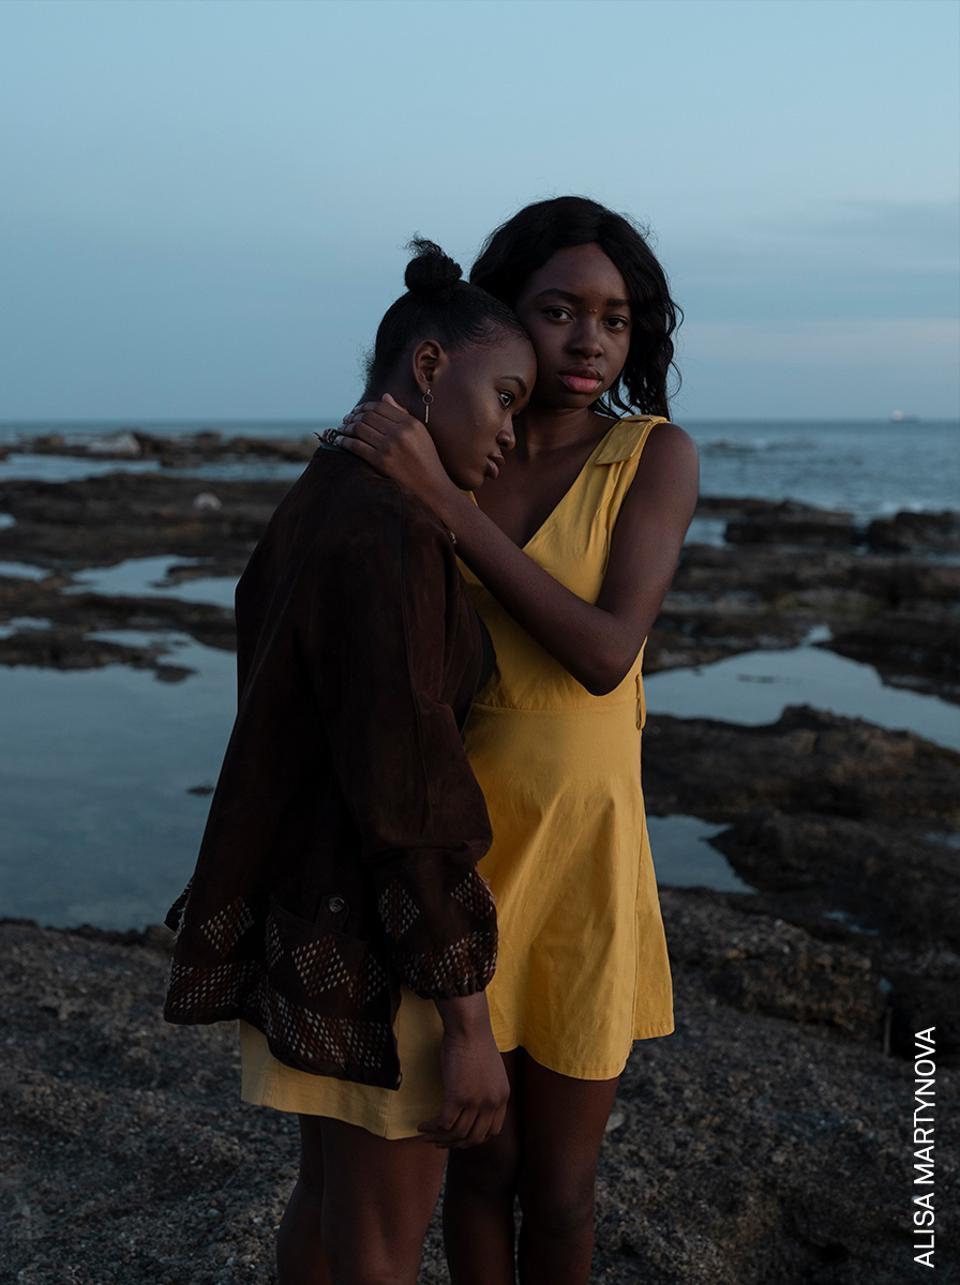 Two young African immigrant girls in Italy.